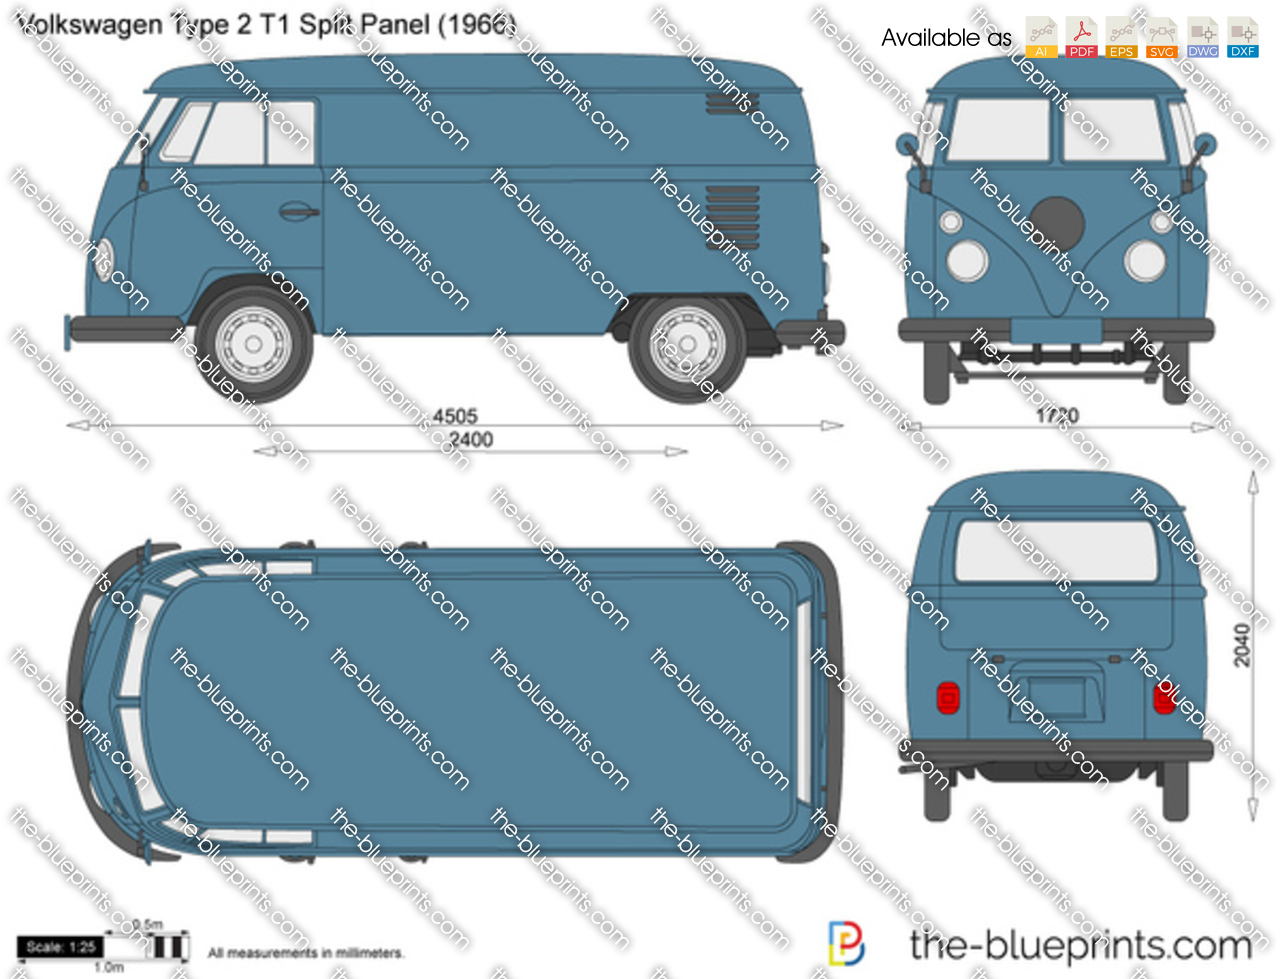 Volkswagen Type 2 T1 Split Panel 1967